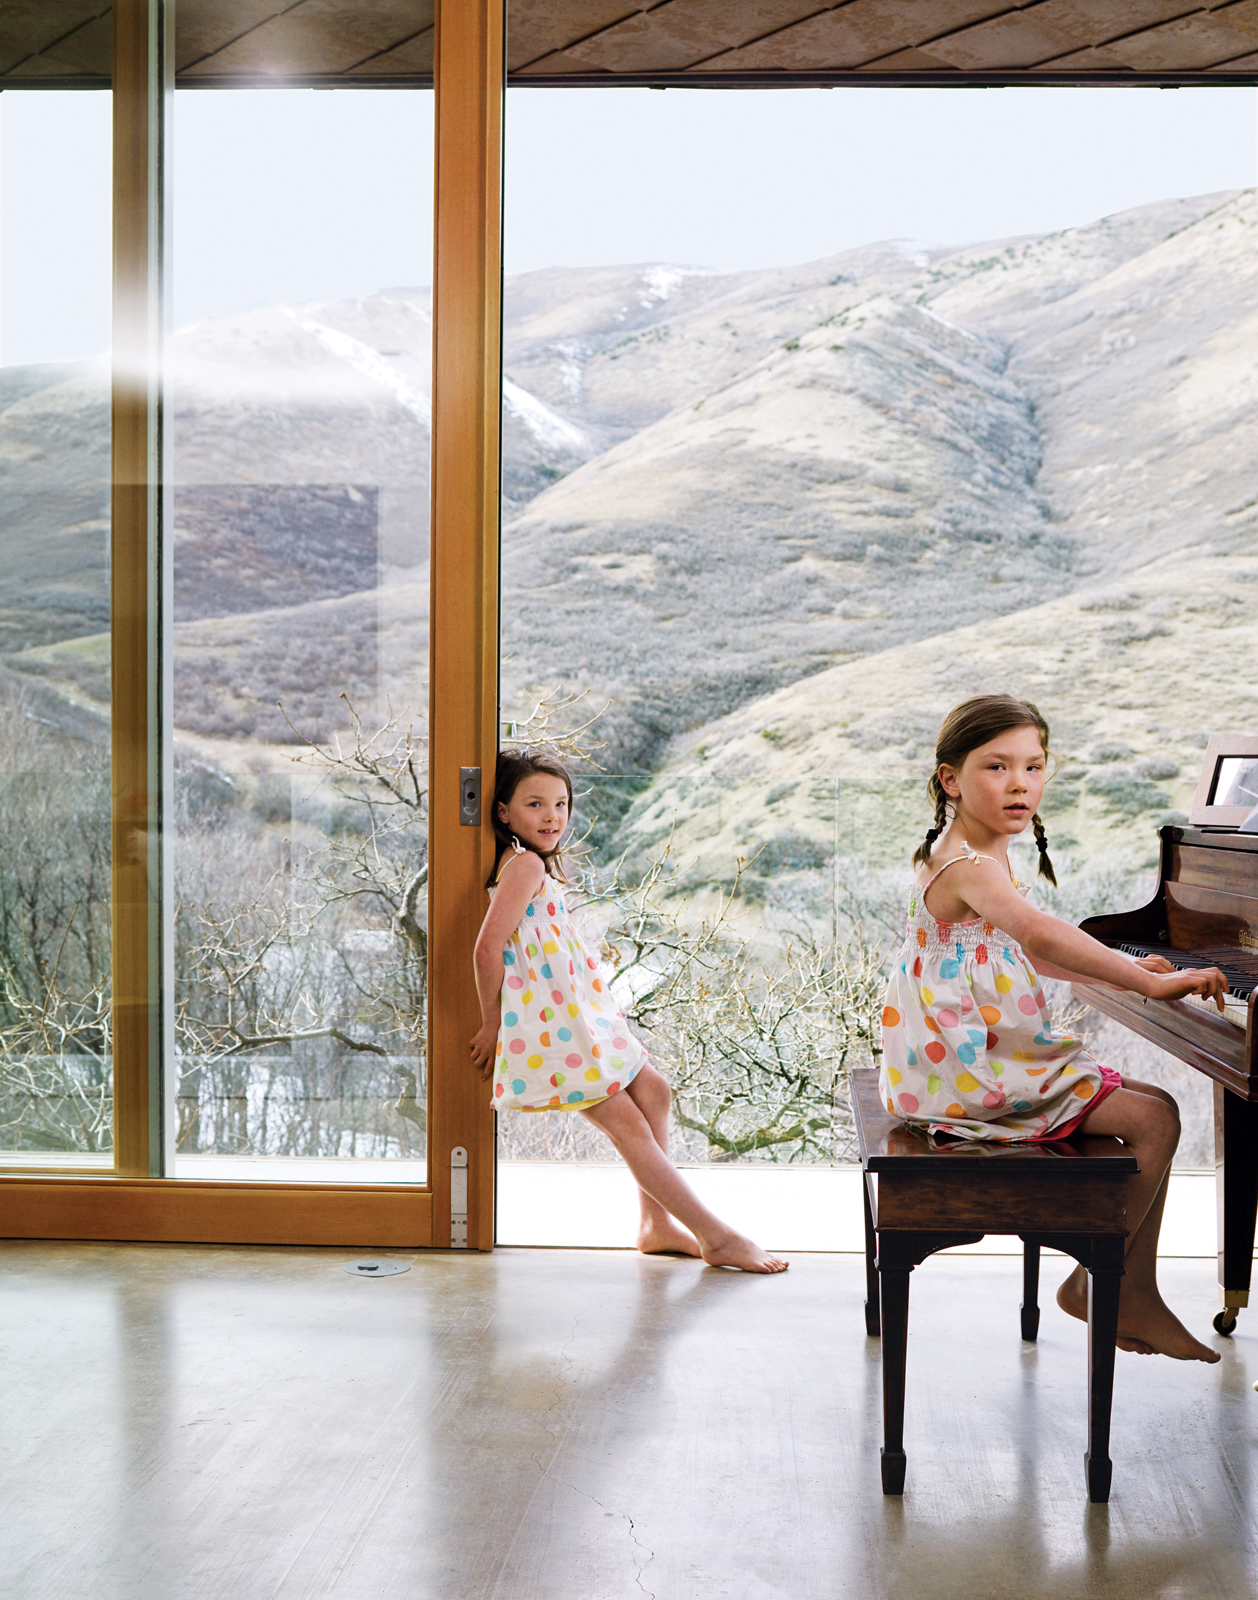 In warm weather, the family slides open the doors to draw in cool canyon breezes.